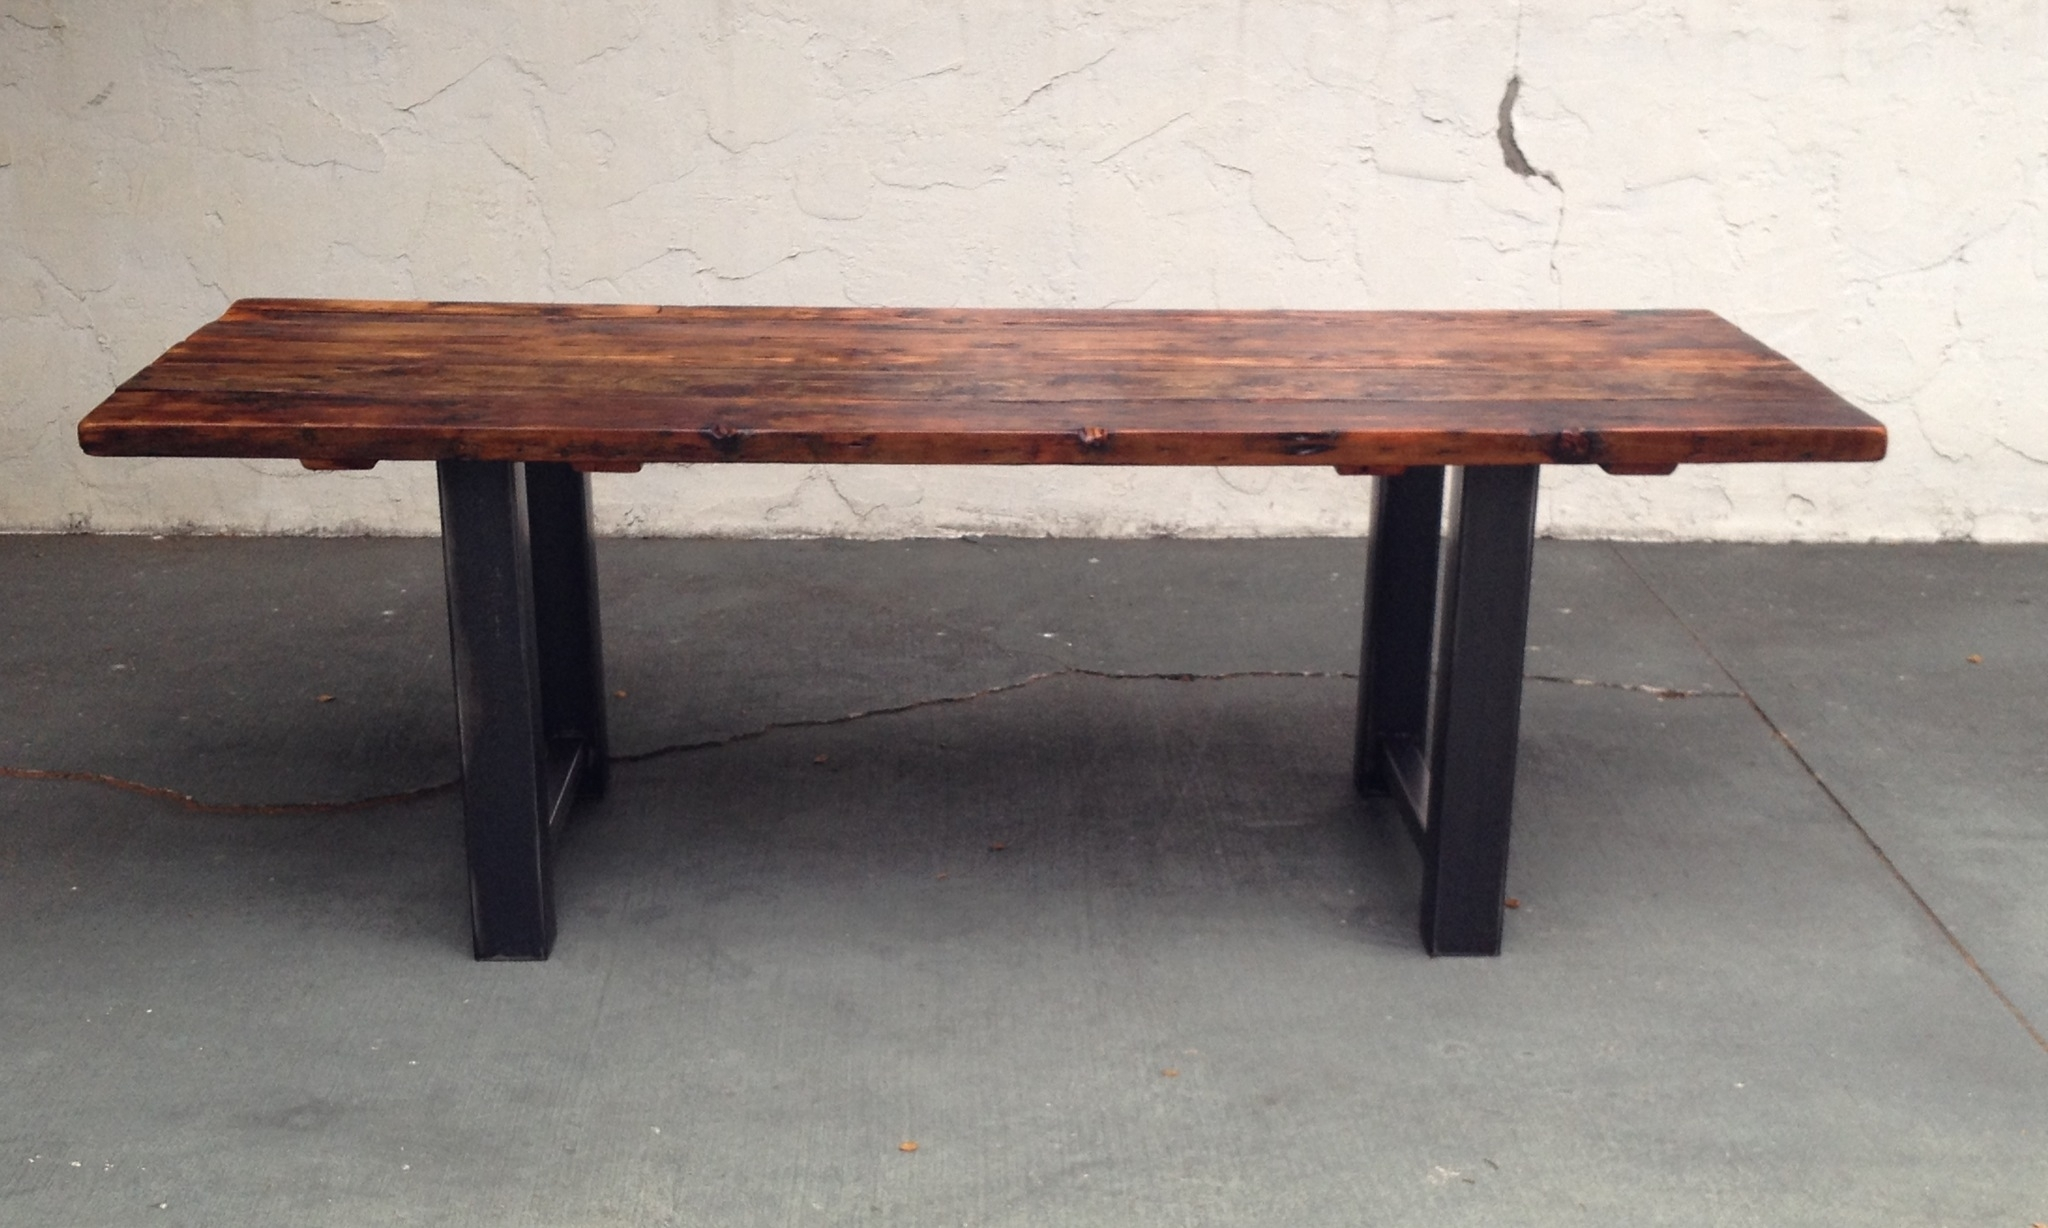 Reclaimed Wood And Steel Dining Table | The Coastal Craftsman Throughout 2017 Iron And Wood Dining Tables (View 17 of 20)